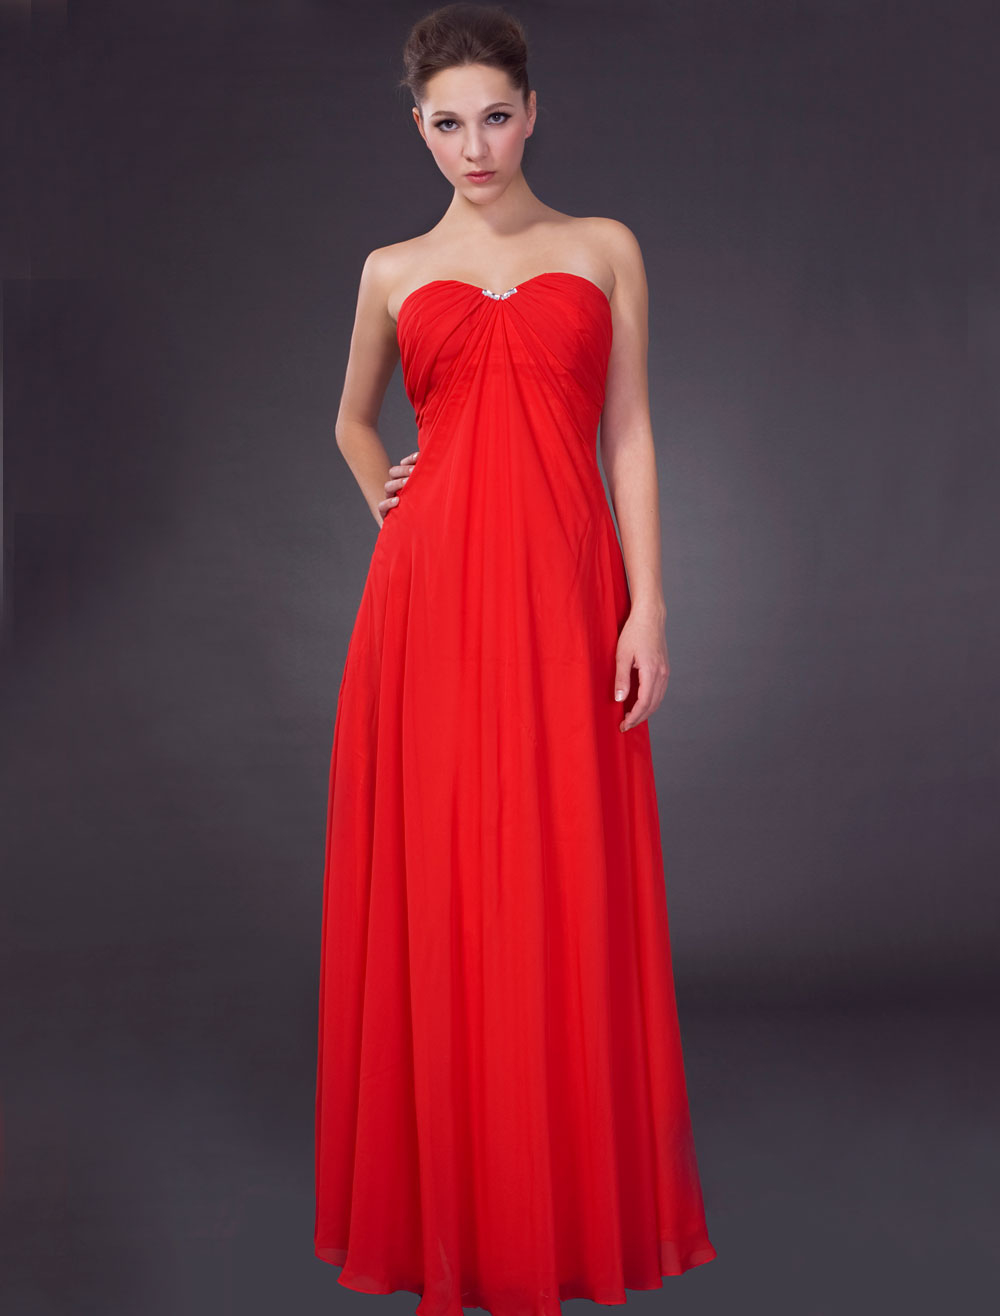 Red Empire Waist Strapless Satin Chiffon Maxi Evening Gown